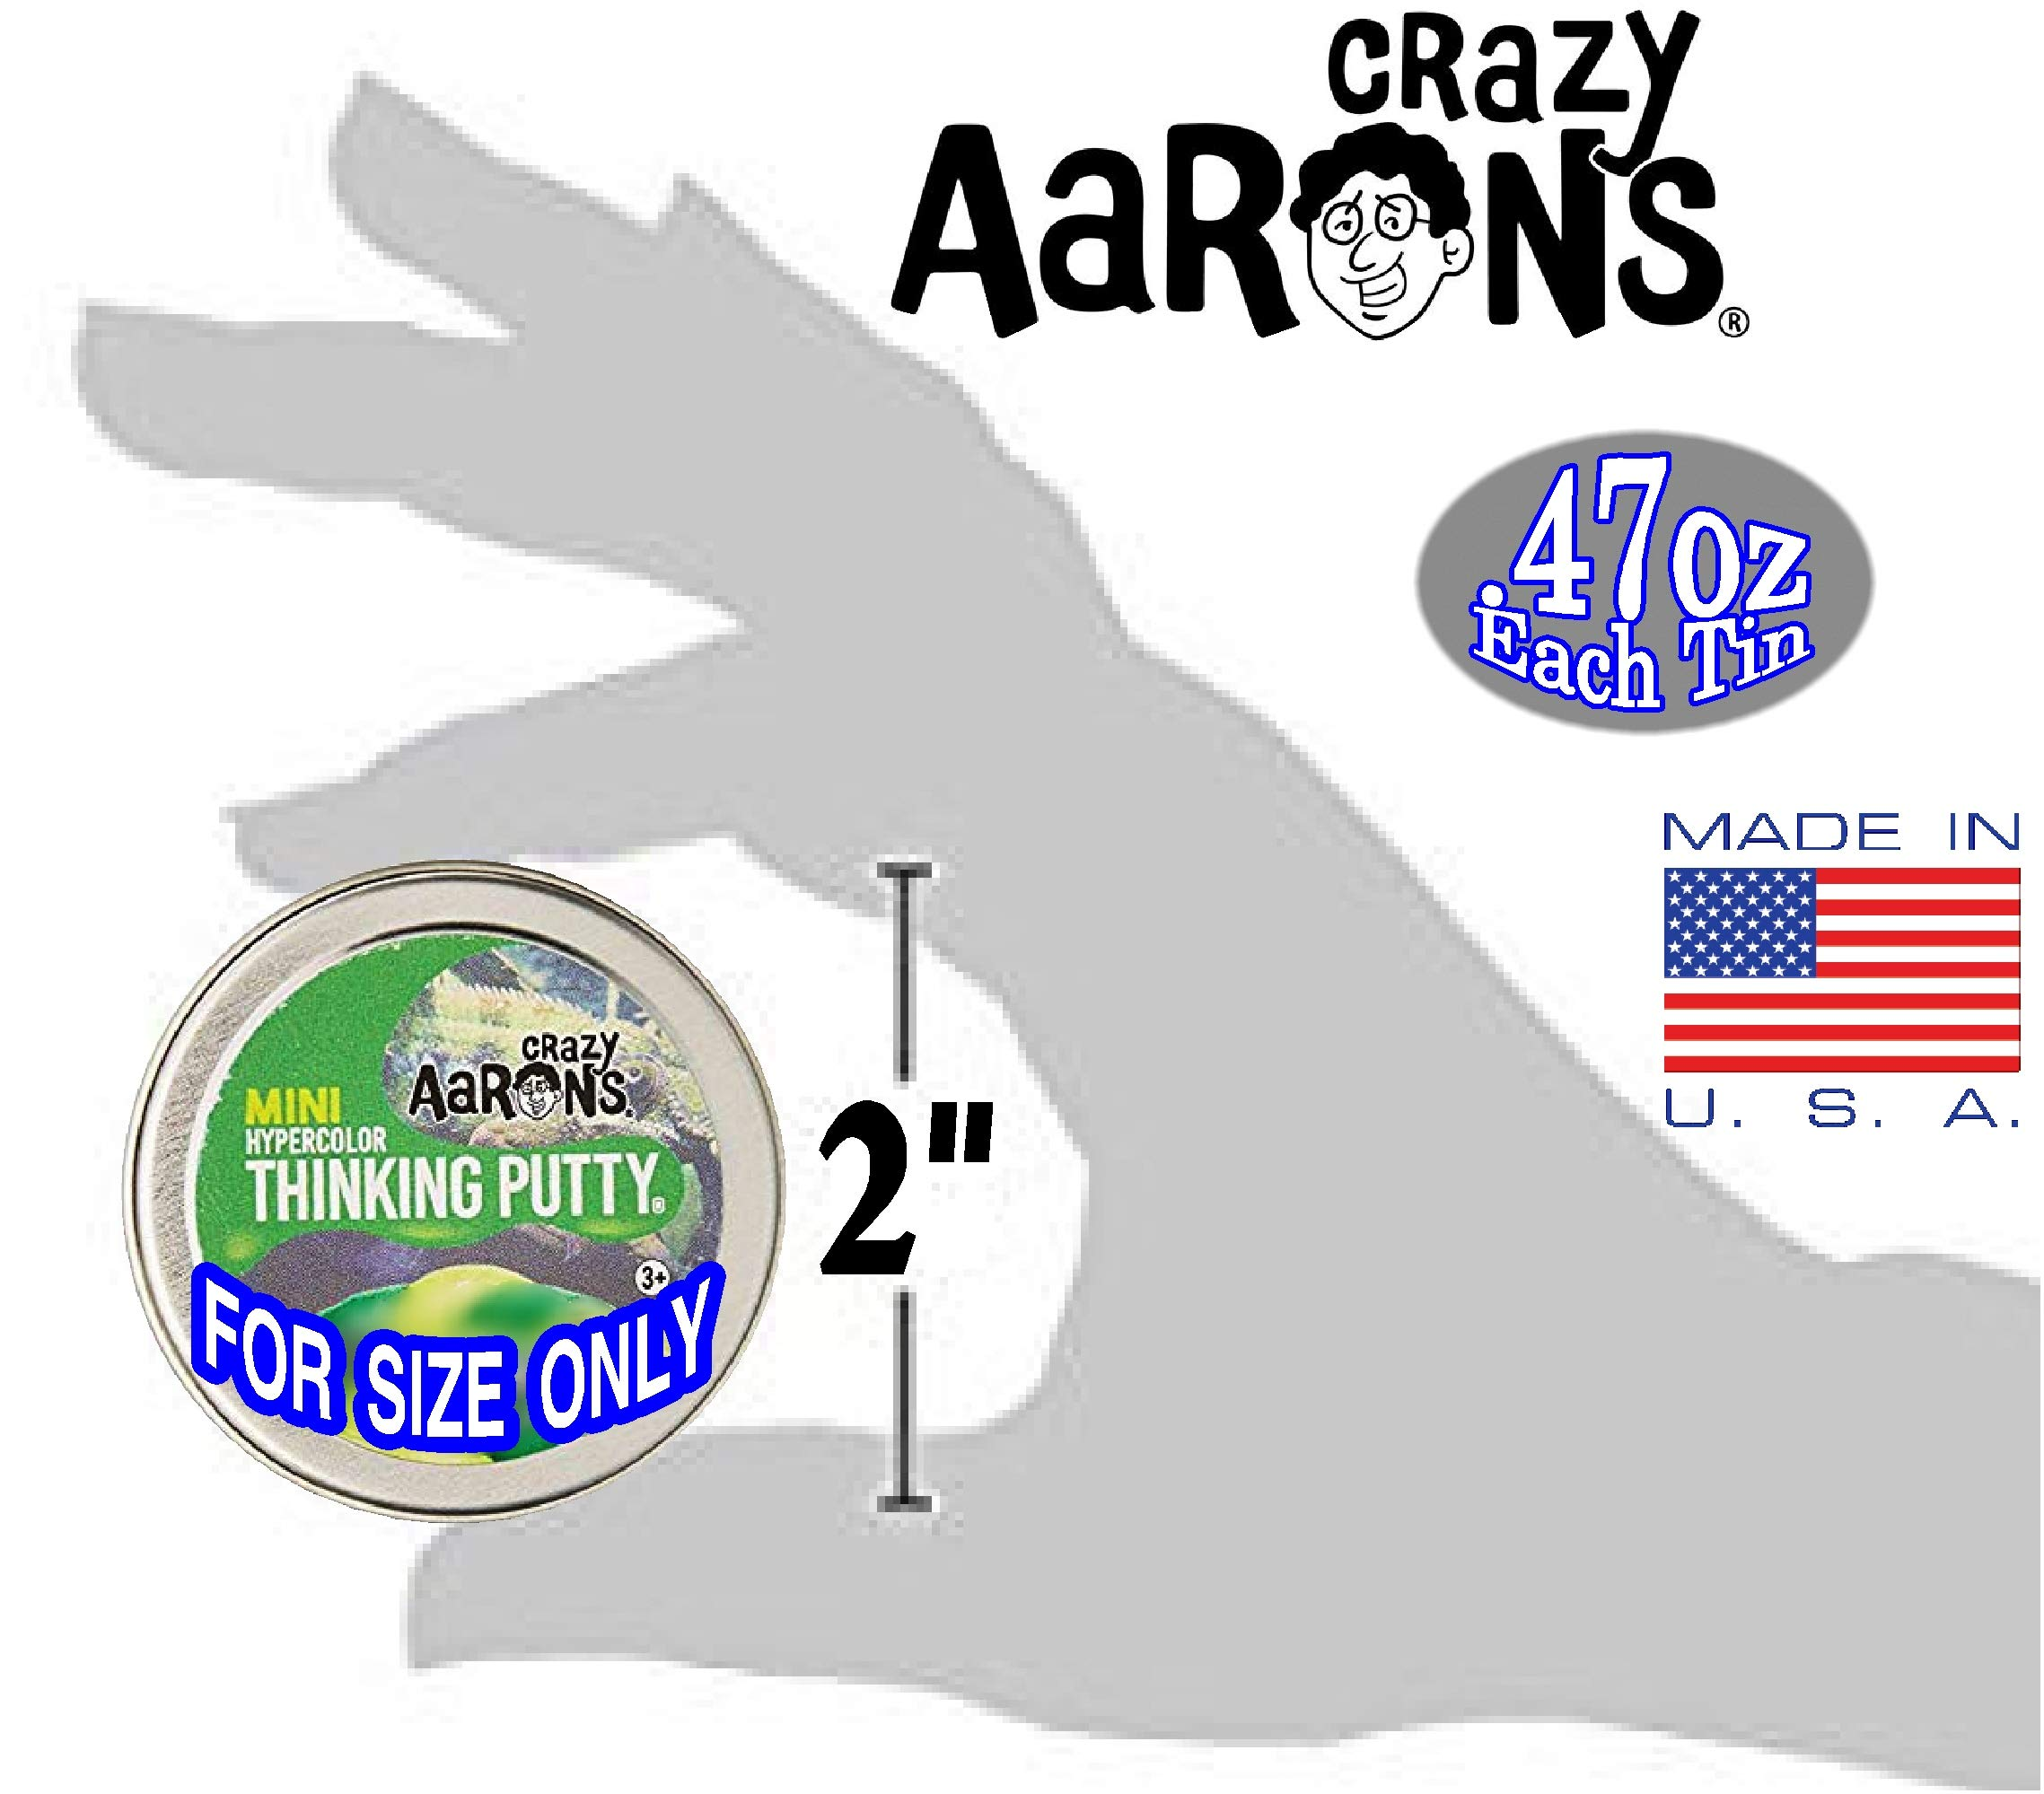 Crazy Aaron's Thinking Putty Mini Tin Gift Set Bundle (Sample Set 3) with Super Fly, Neon Flash, Super Lava, Amber, Love Air & Exclusive Scorpion Skin Glow in The Dark - 6 Pack by Crazy Aaron's (Image #8)